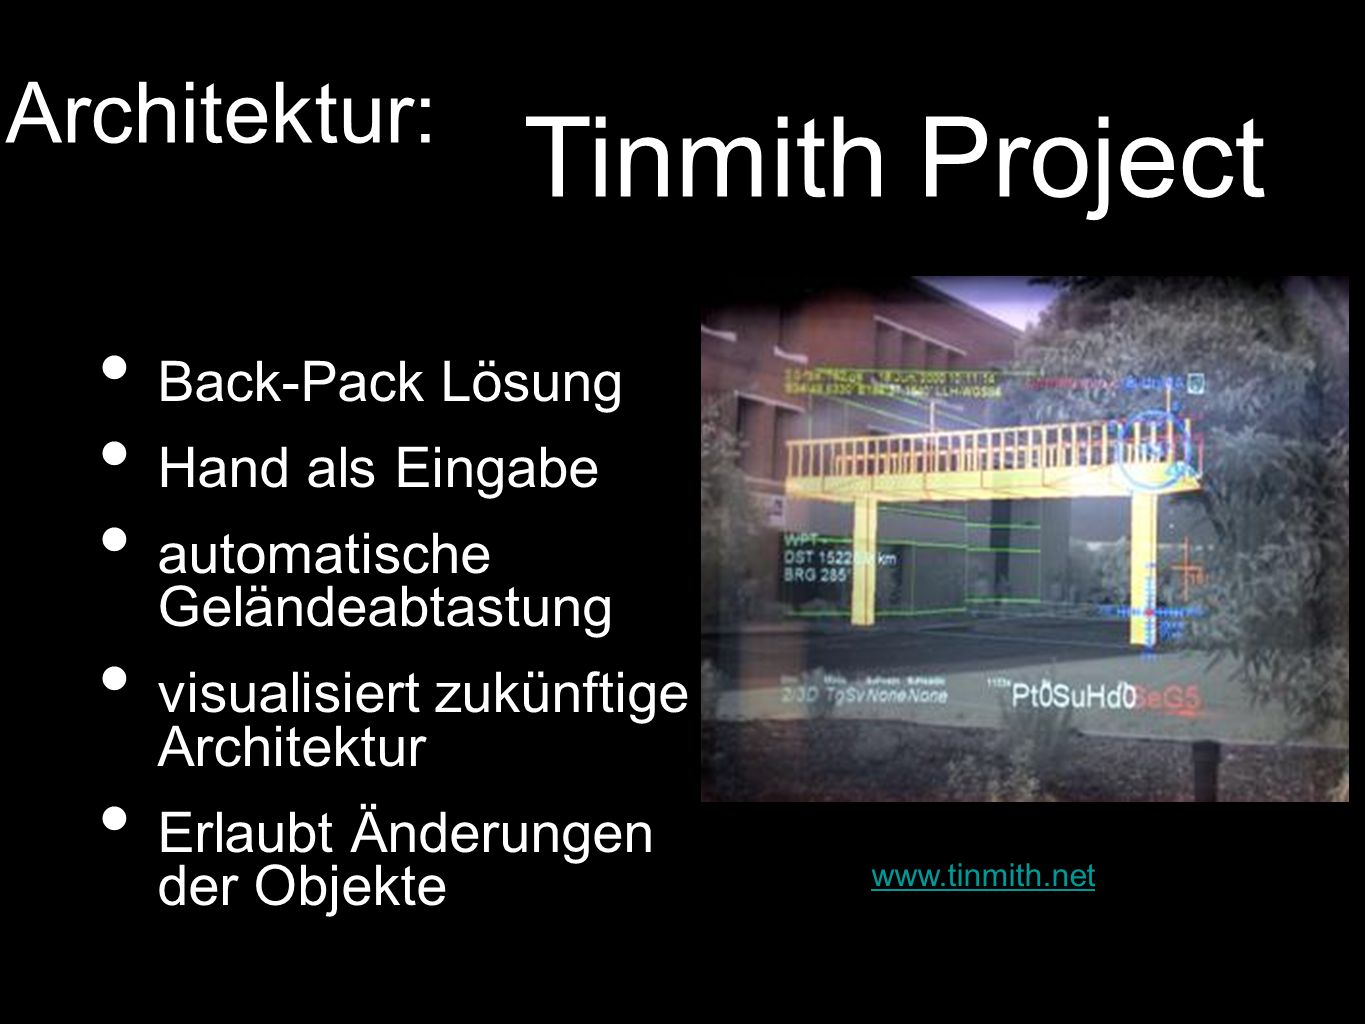 Tinmith Project Architektur: Back-Pack Lösung Hand als Eingabe